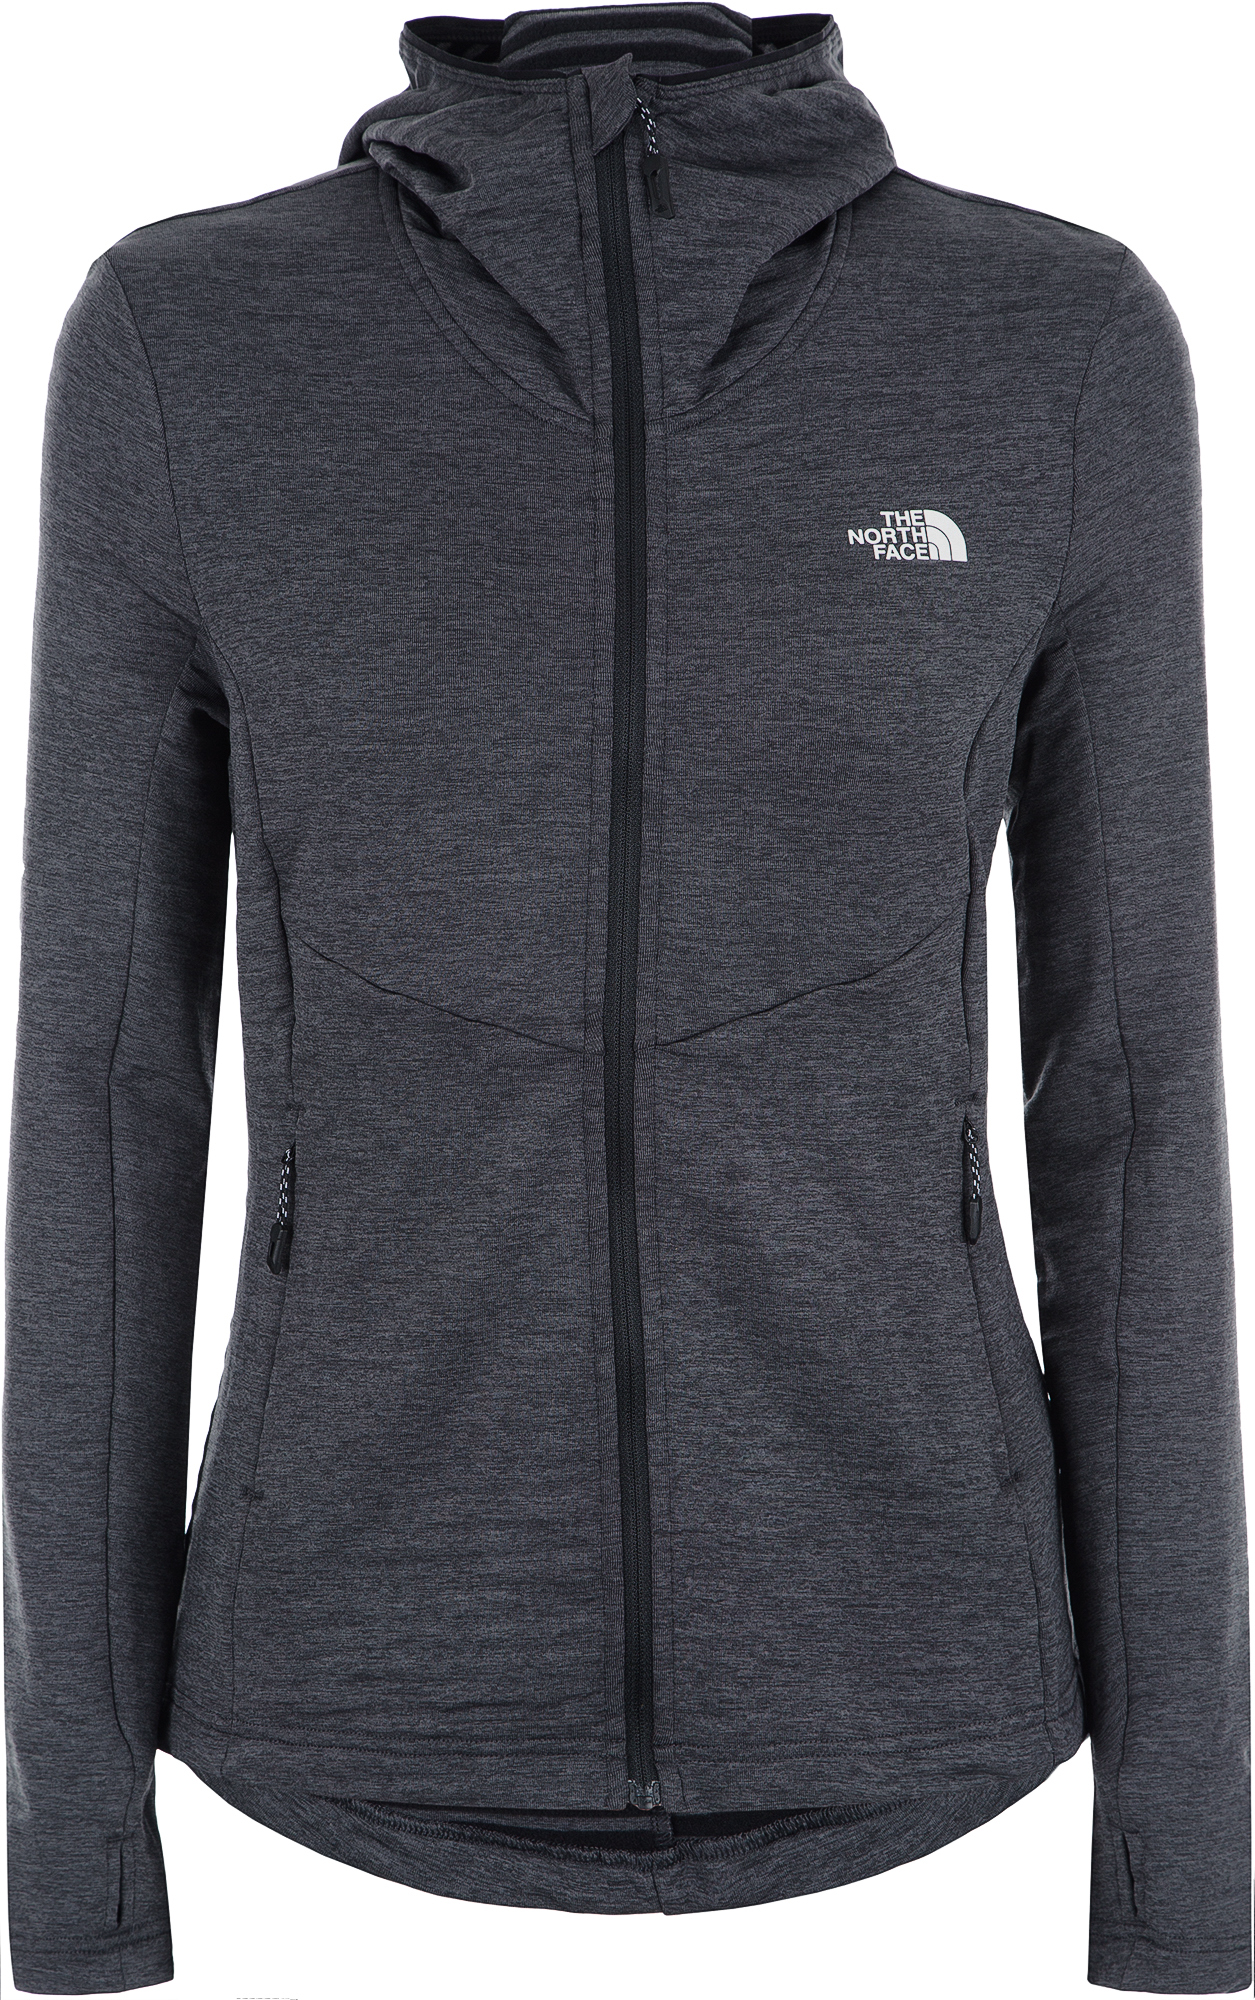 The North Face Джемпер женский The North Face Impendor Light Midlayer, размер 48 цена и фото